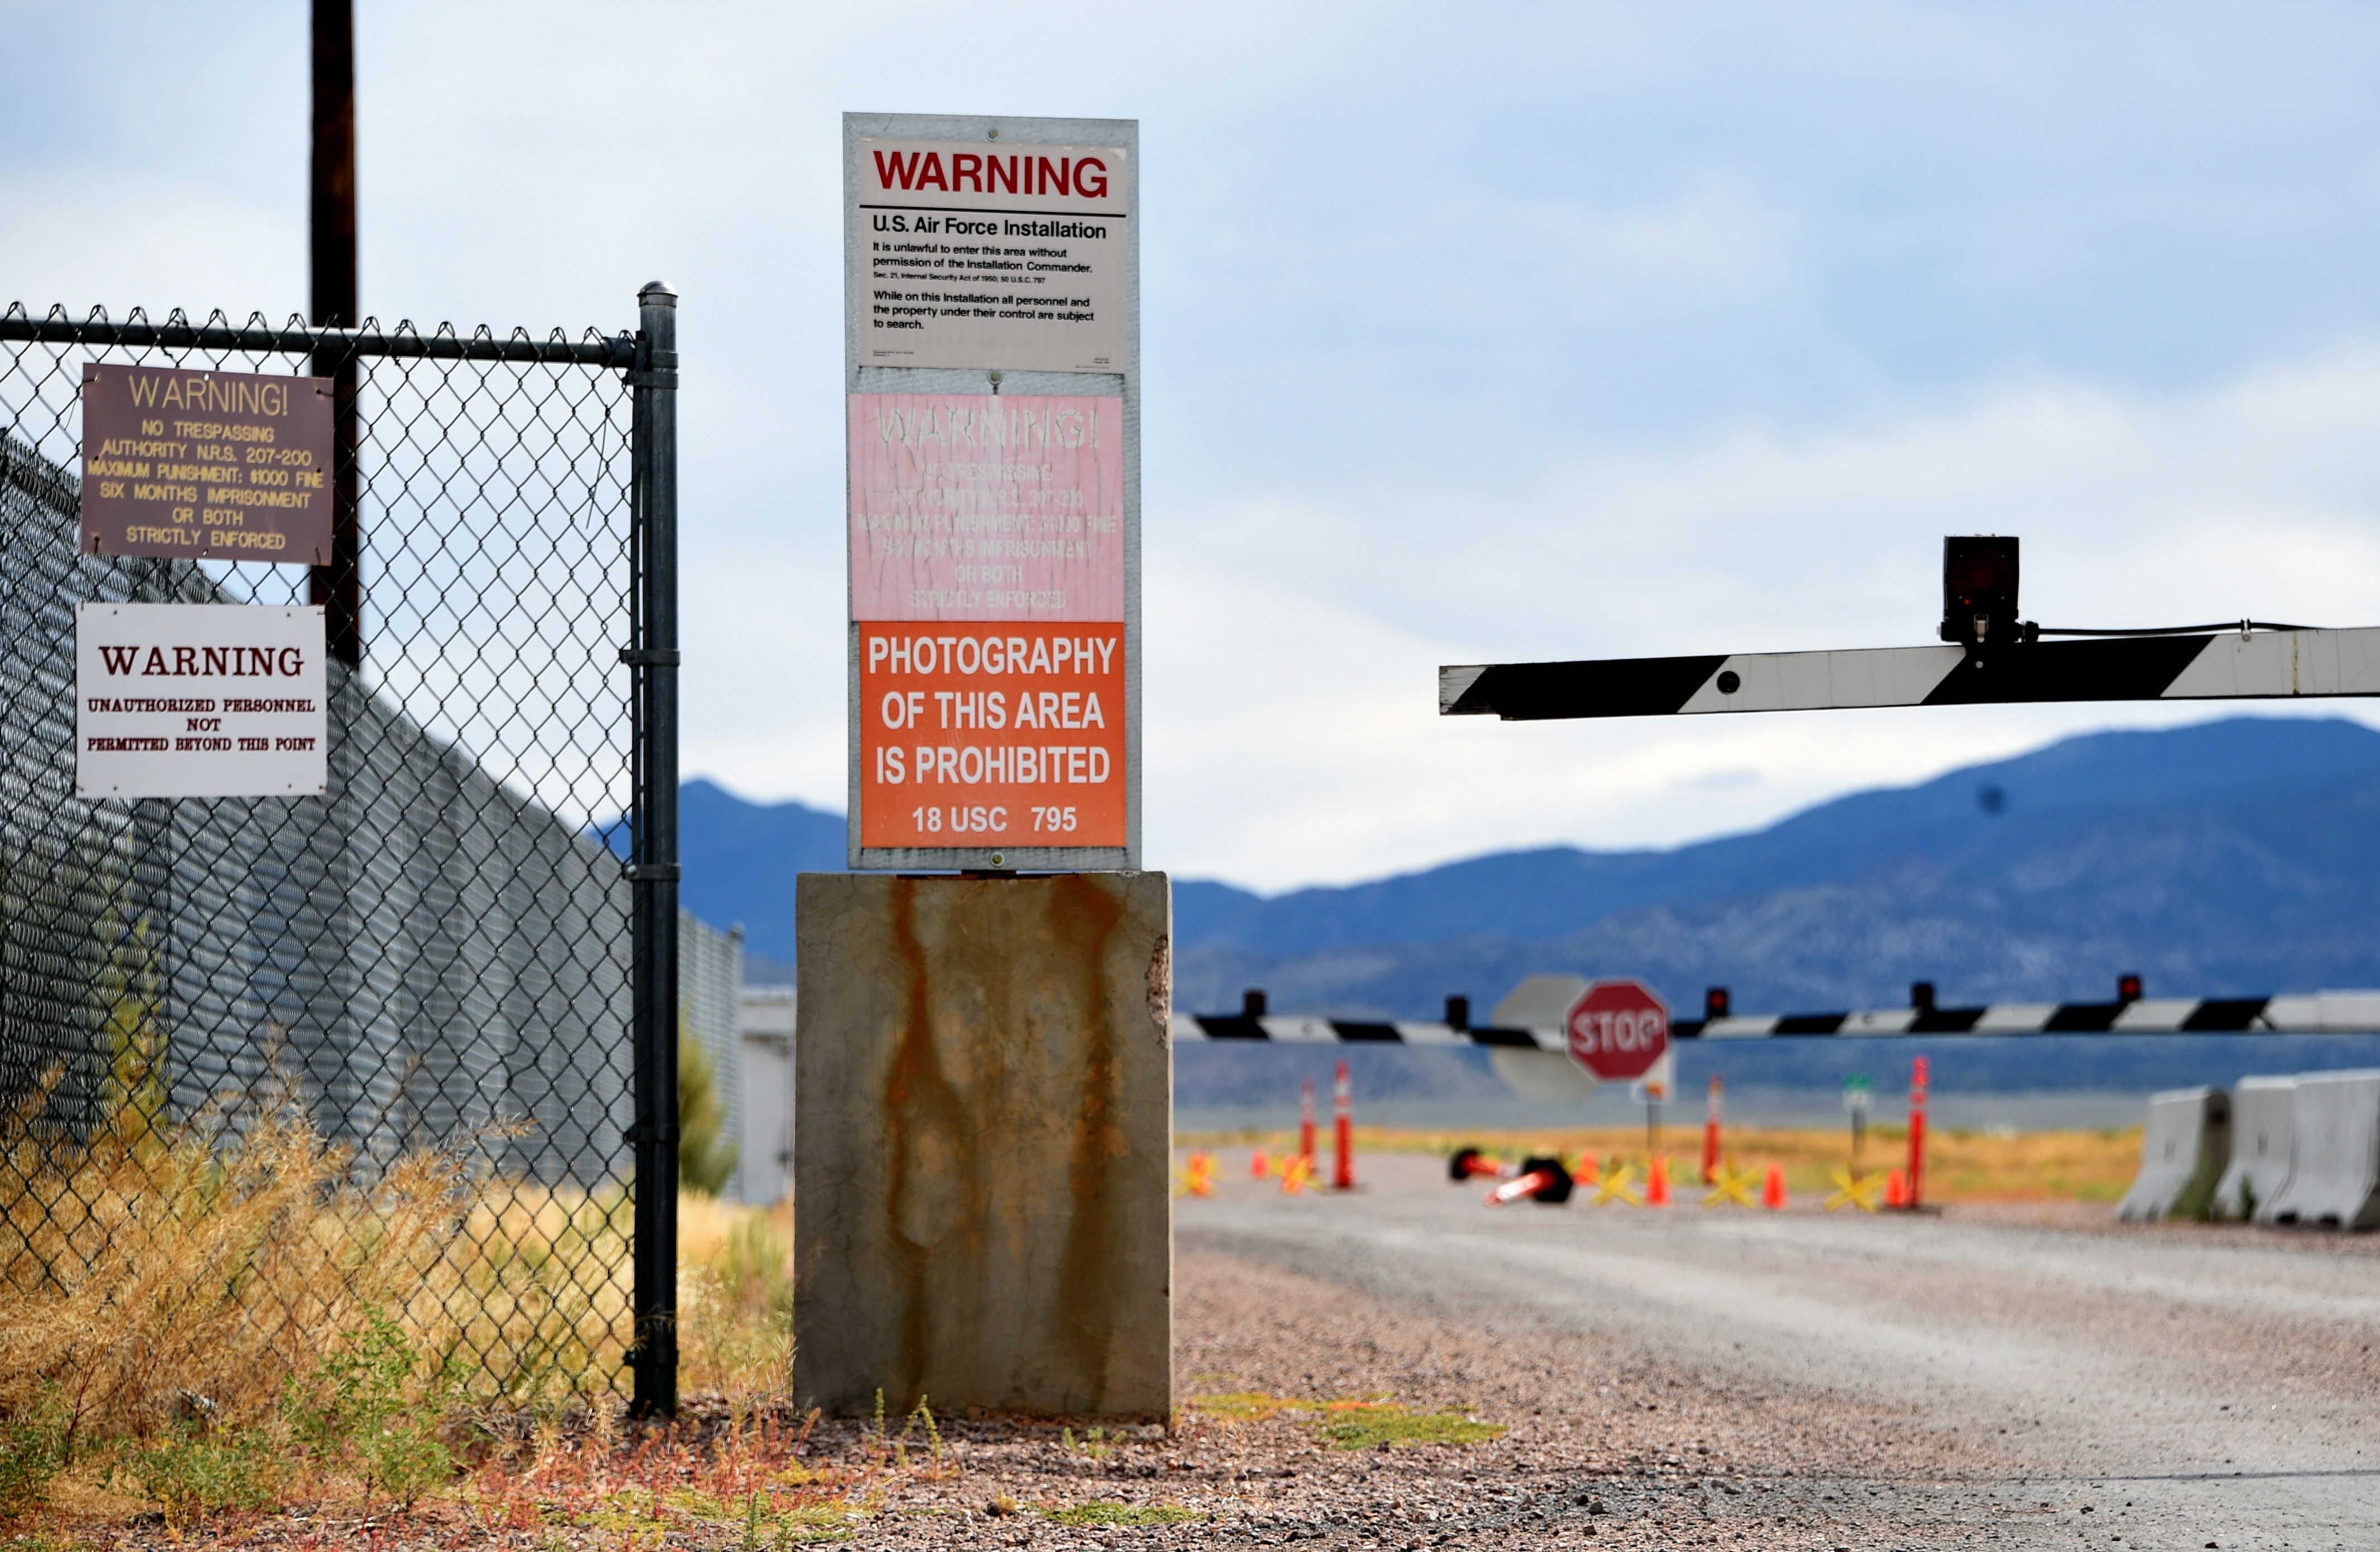 Where is Area 51? | Everything You Need to Know About Area 51